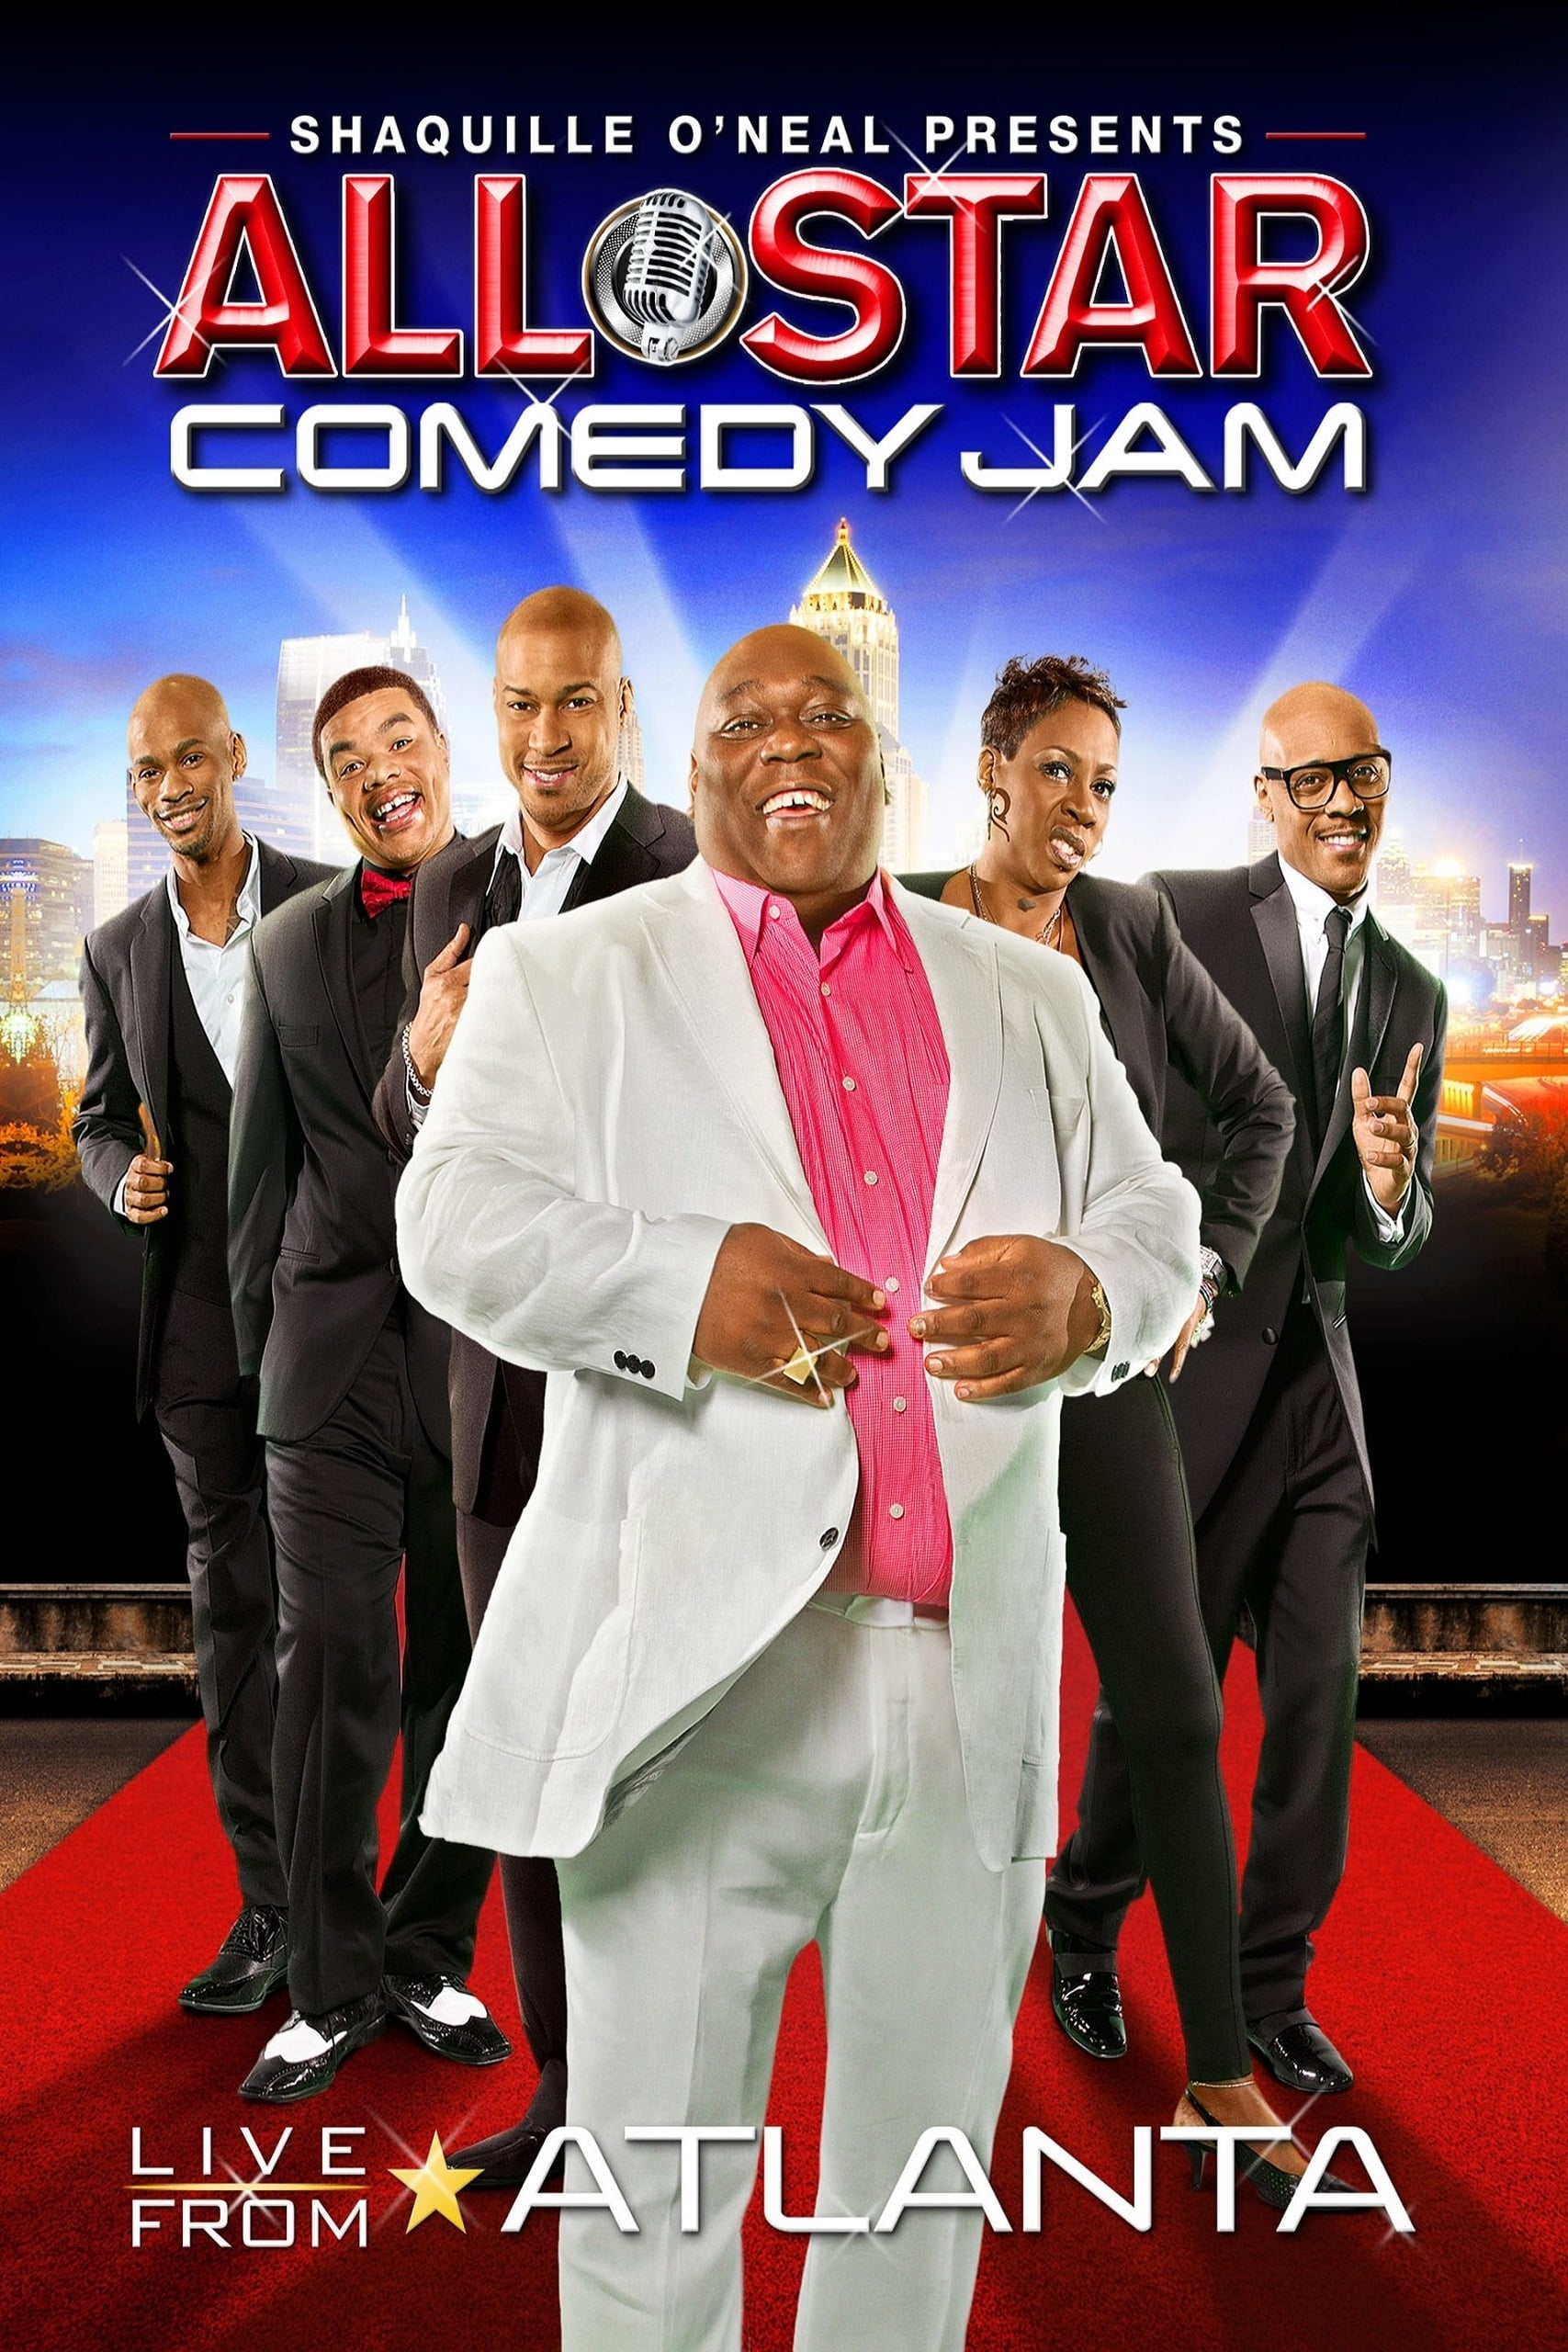 Shaquille O'Neal Presents: All Star Comedy Jam - Live from Atlanta on FREECABLE TV